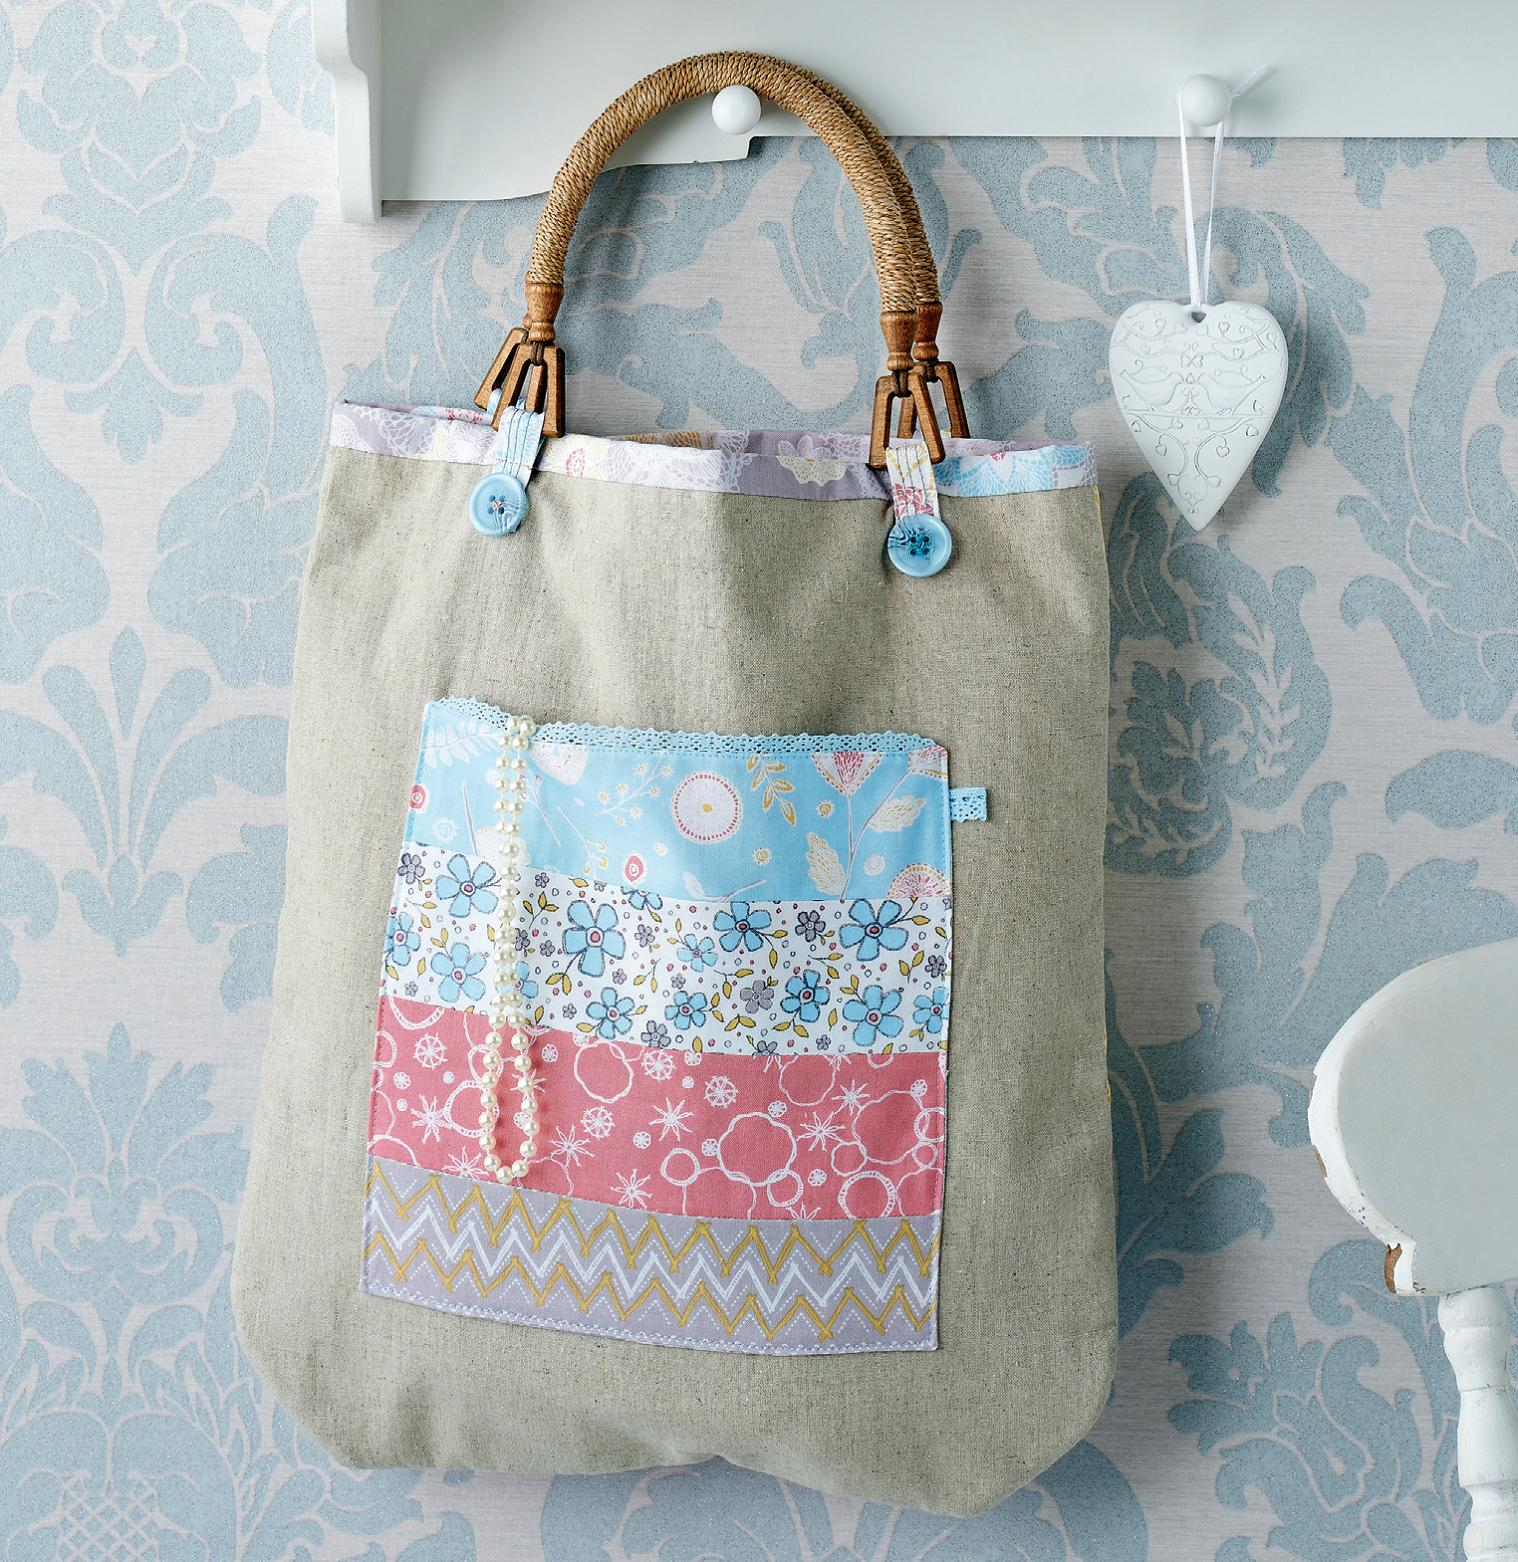 Wooden handled linen tote bag free sewing patterns sew magazine jeuxipadfo Image collections